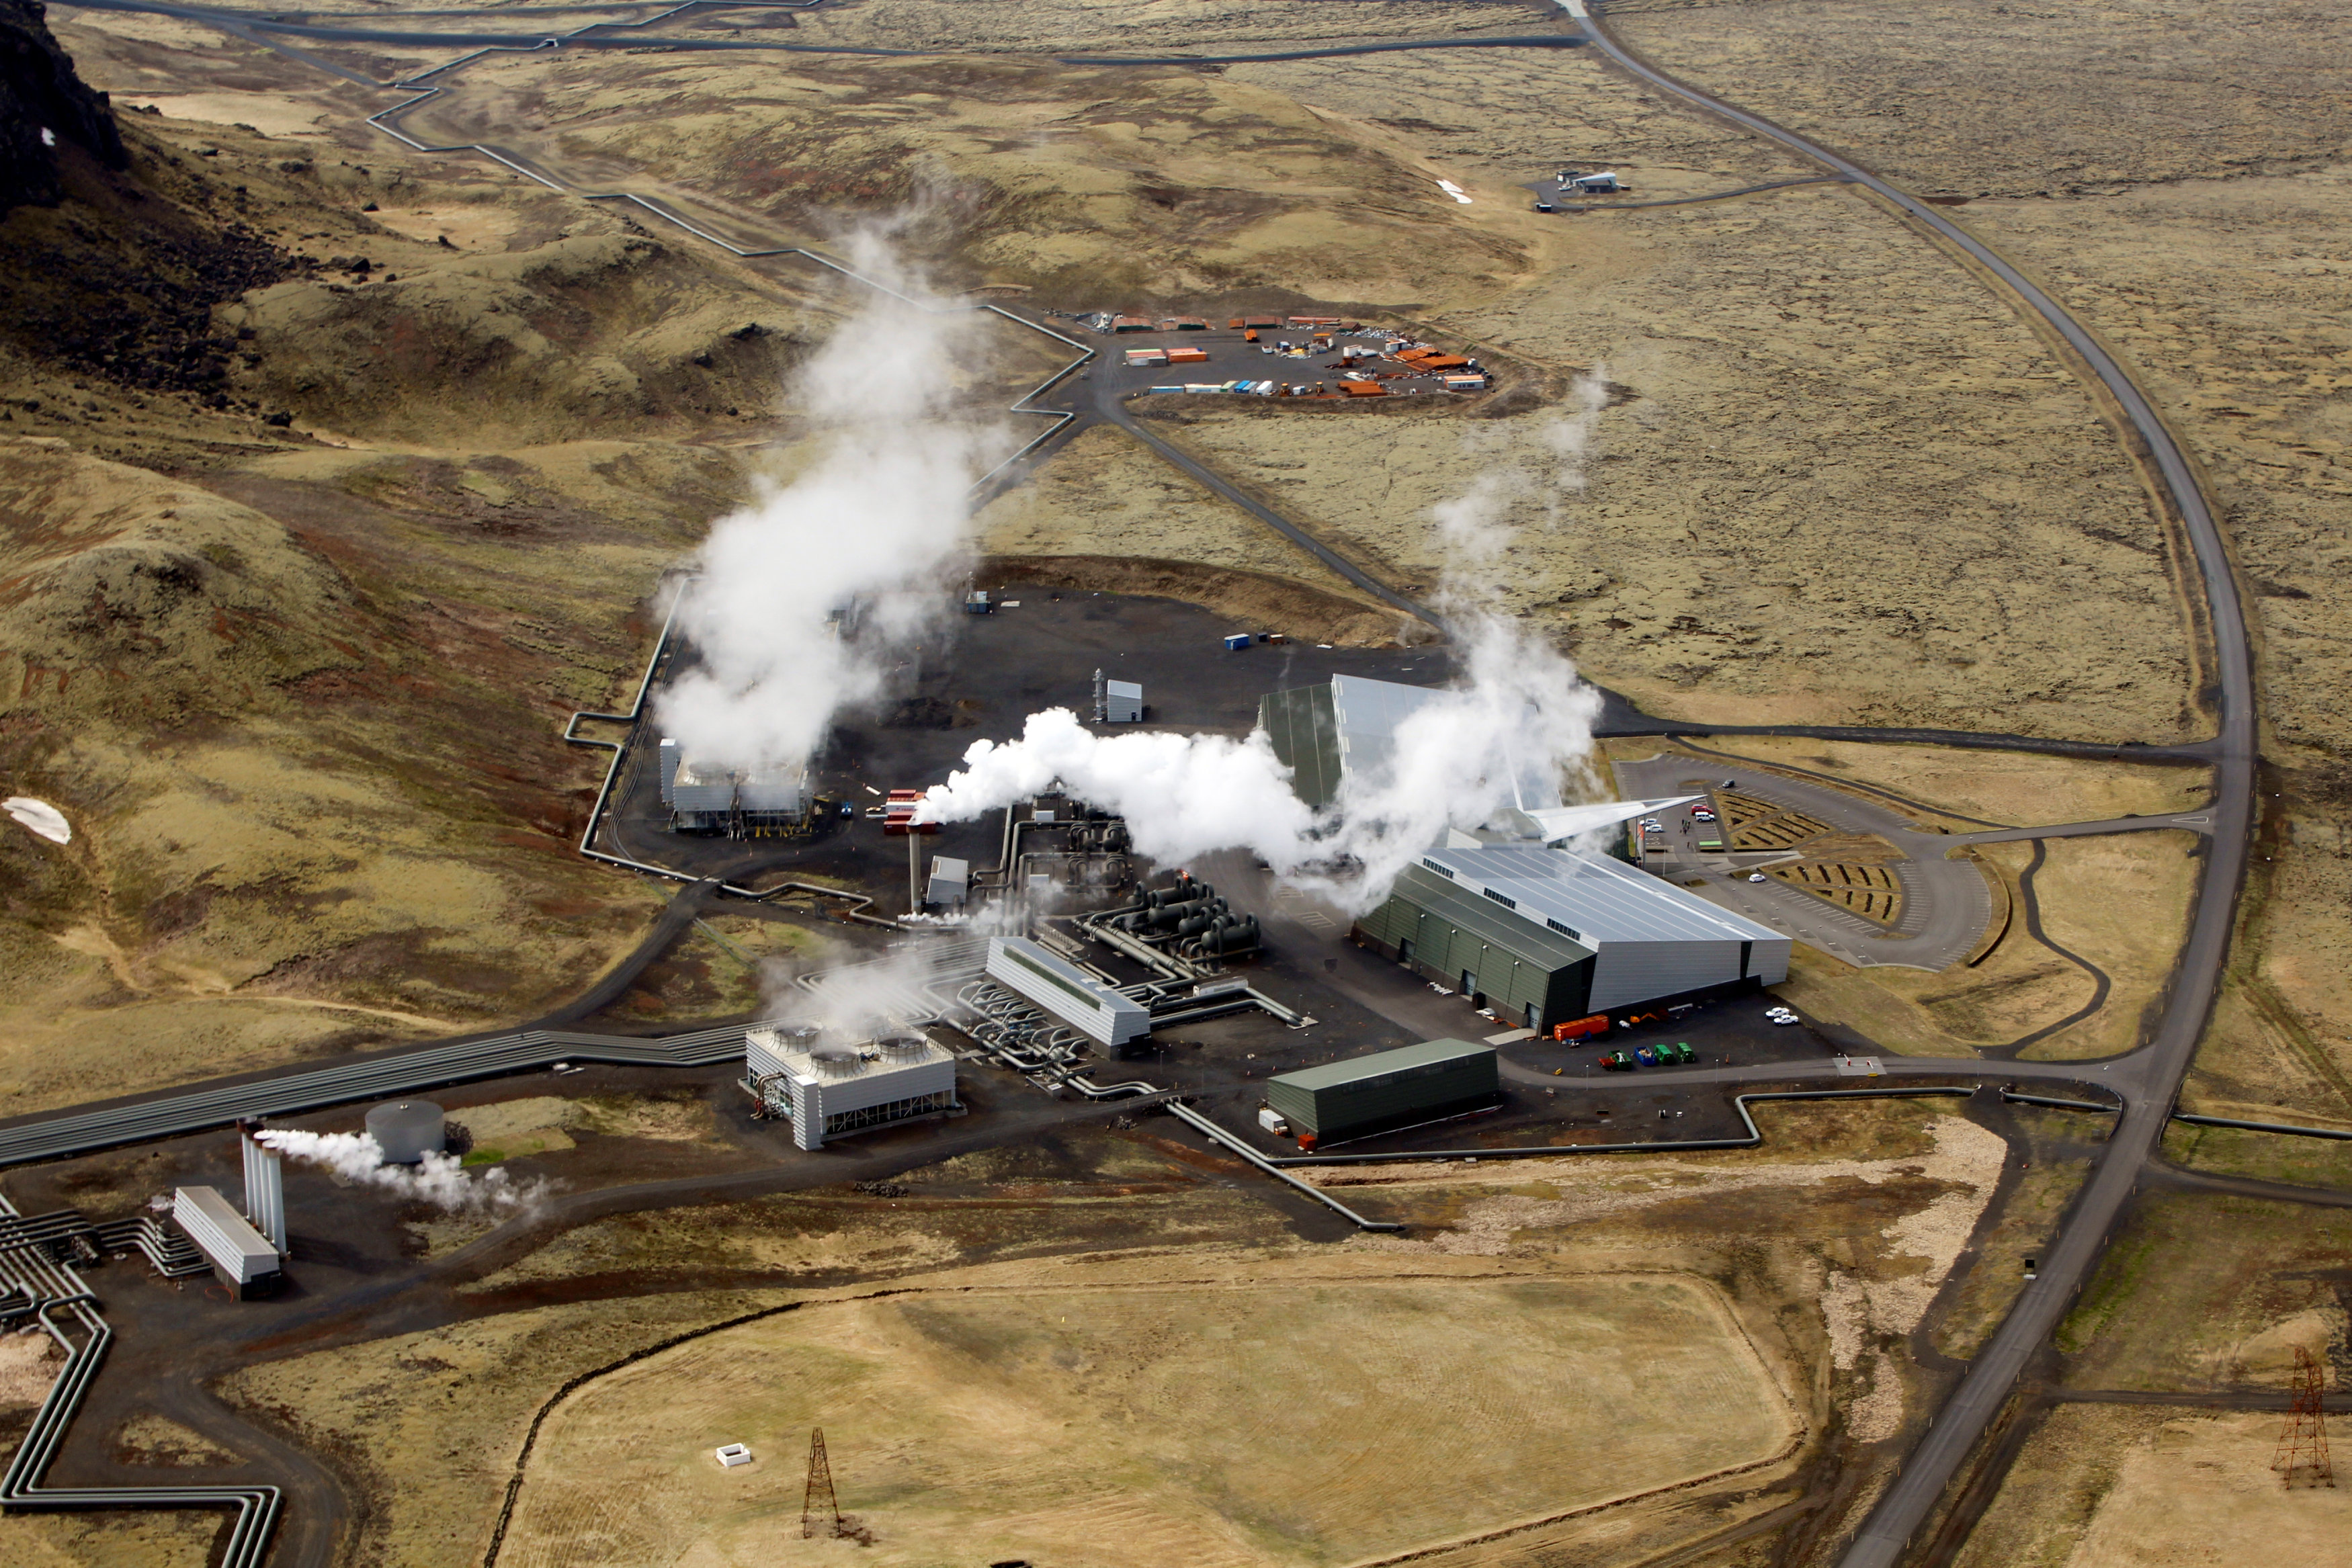 Iceland's volcanoes and hot springs are a step closer to powering UK homes